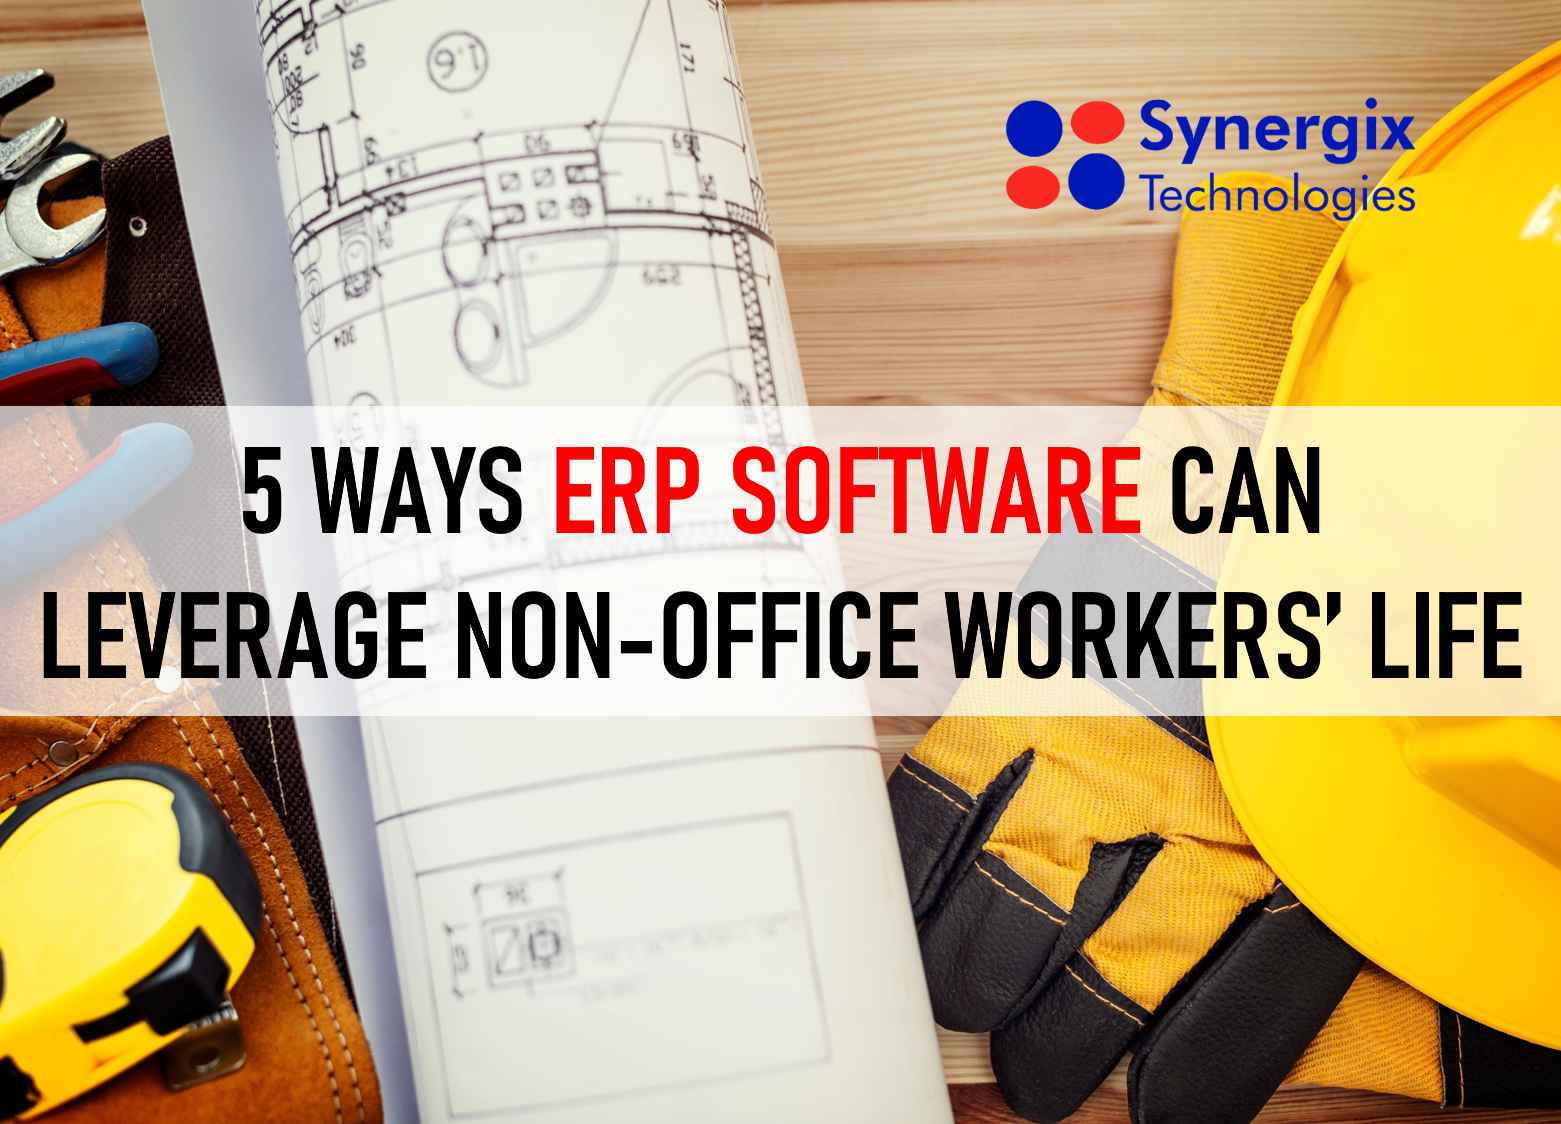 5 Ways ERP Software Can Leverage Non-office Workers' Life